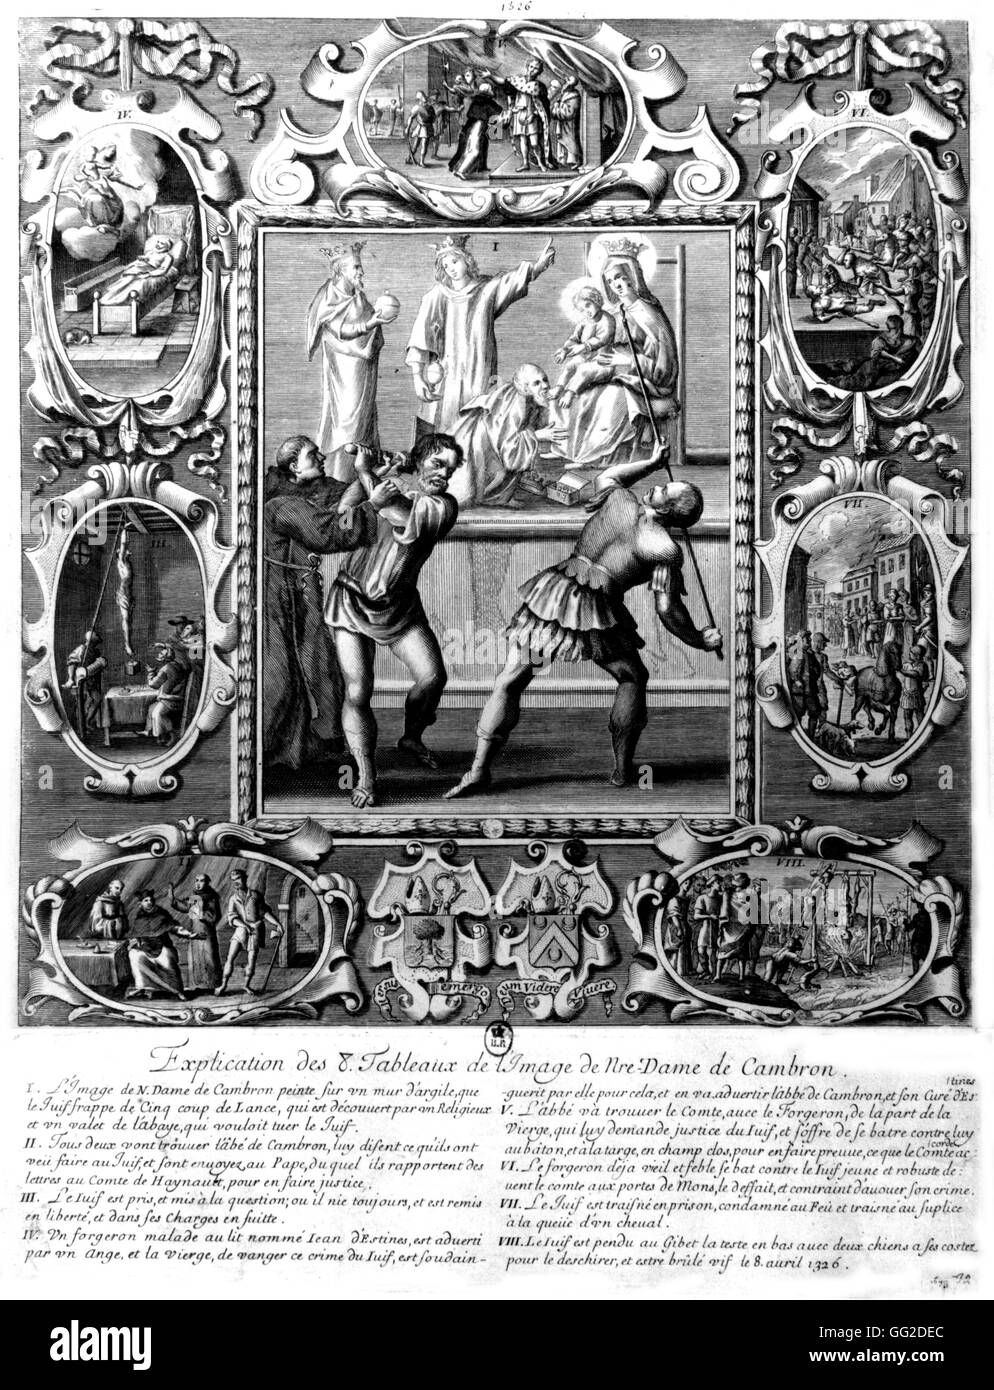 Persecution of a Jewish blasphemer of the image of Our Lady of Cambron 1615-1628 France Paris. National Library - Stock Image